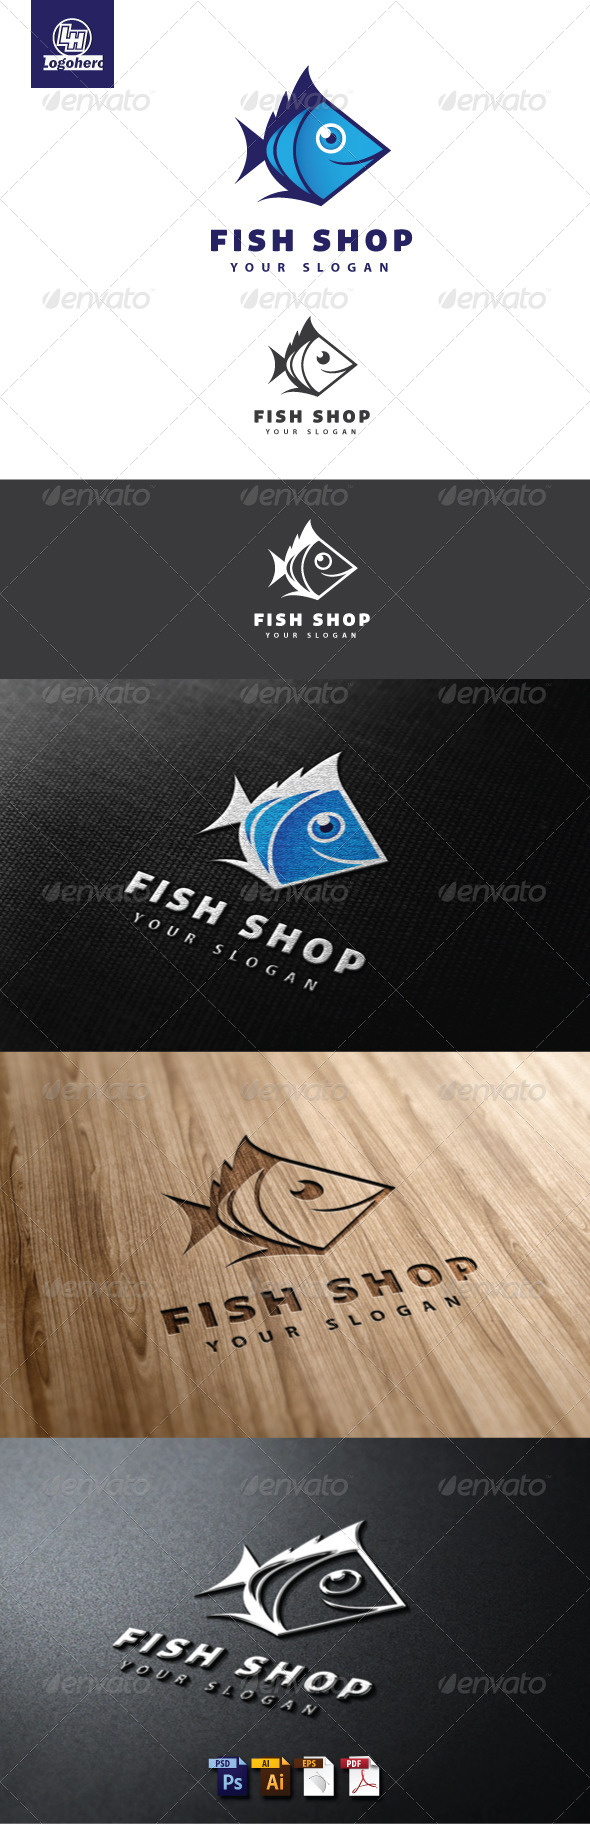 Fish Shop Logo Template